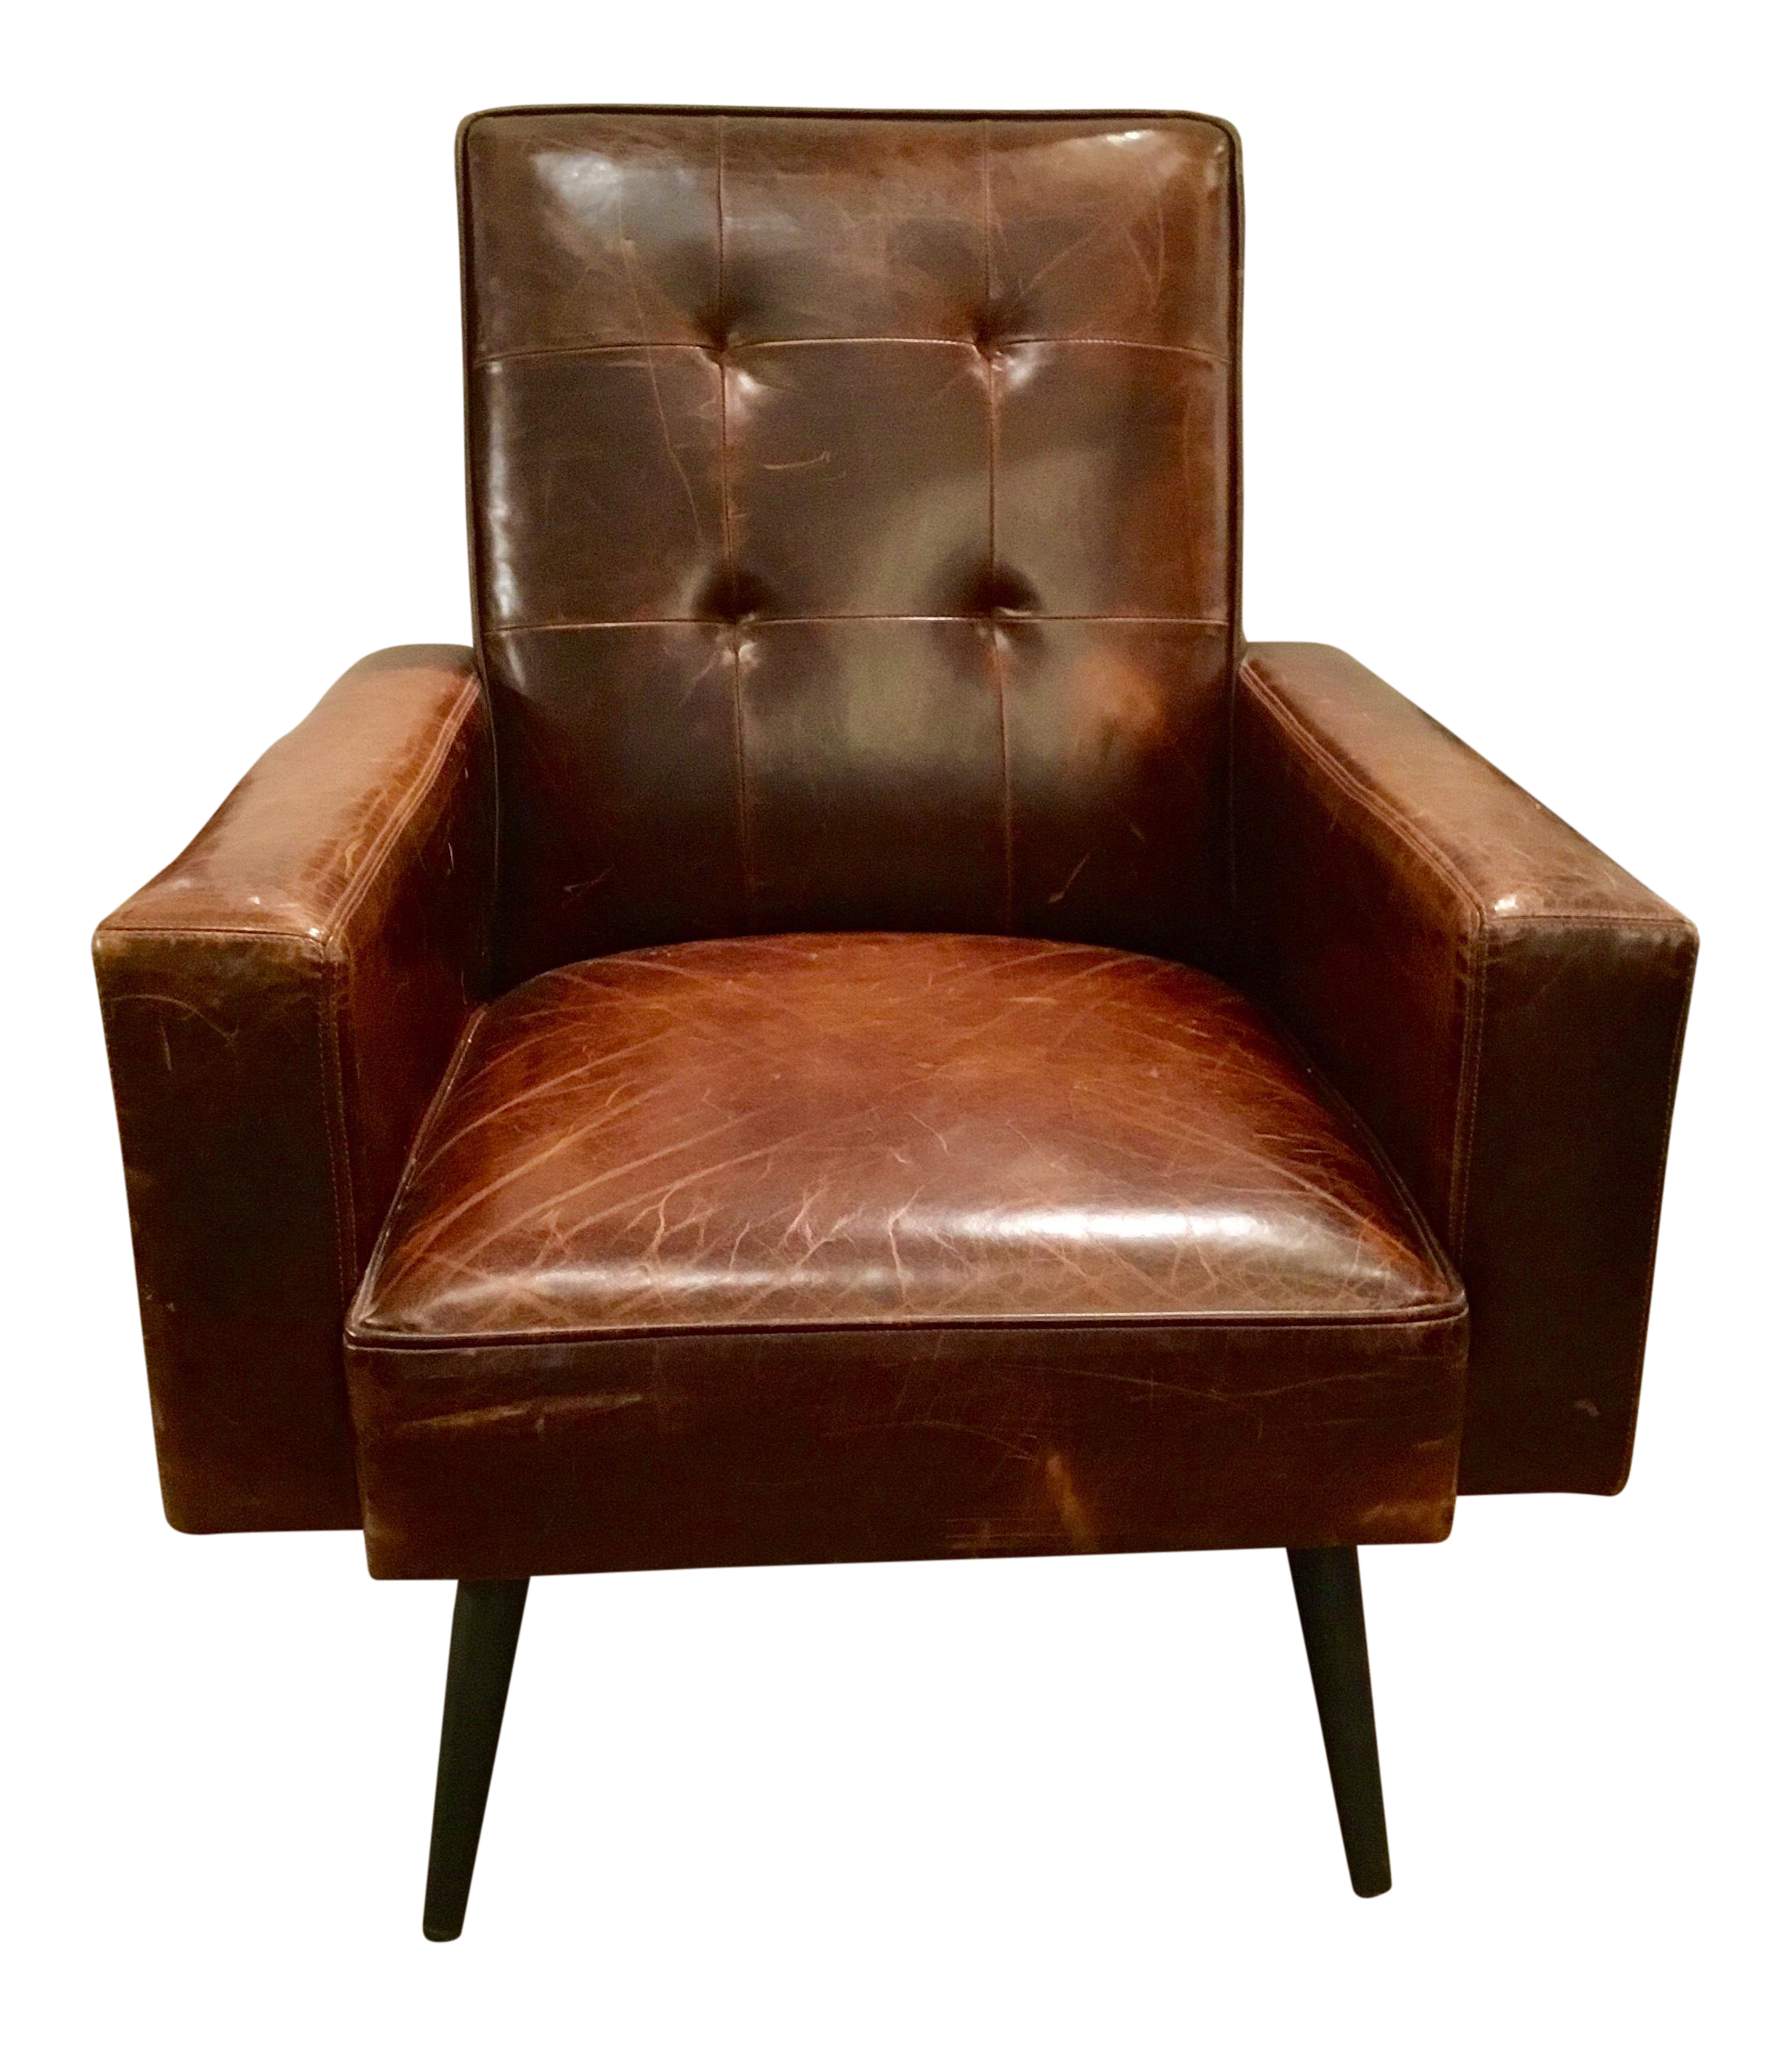 Phenomenal Brown Mid Century Style Distressed Leather Chair Camellatalisay Diy Chair Ideas Camellatalisaycom